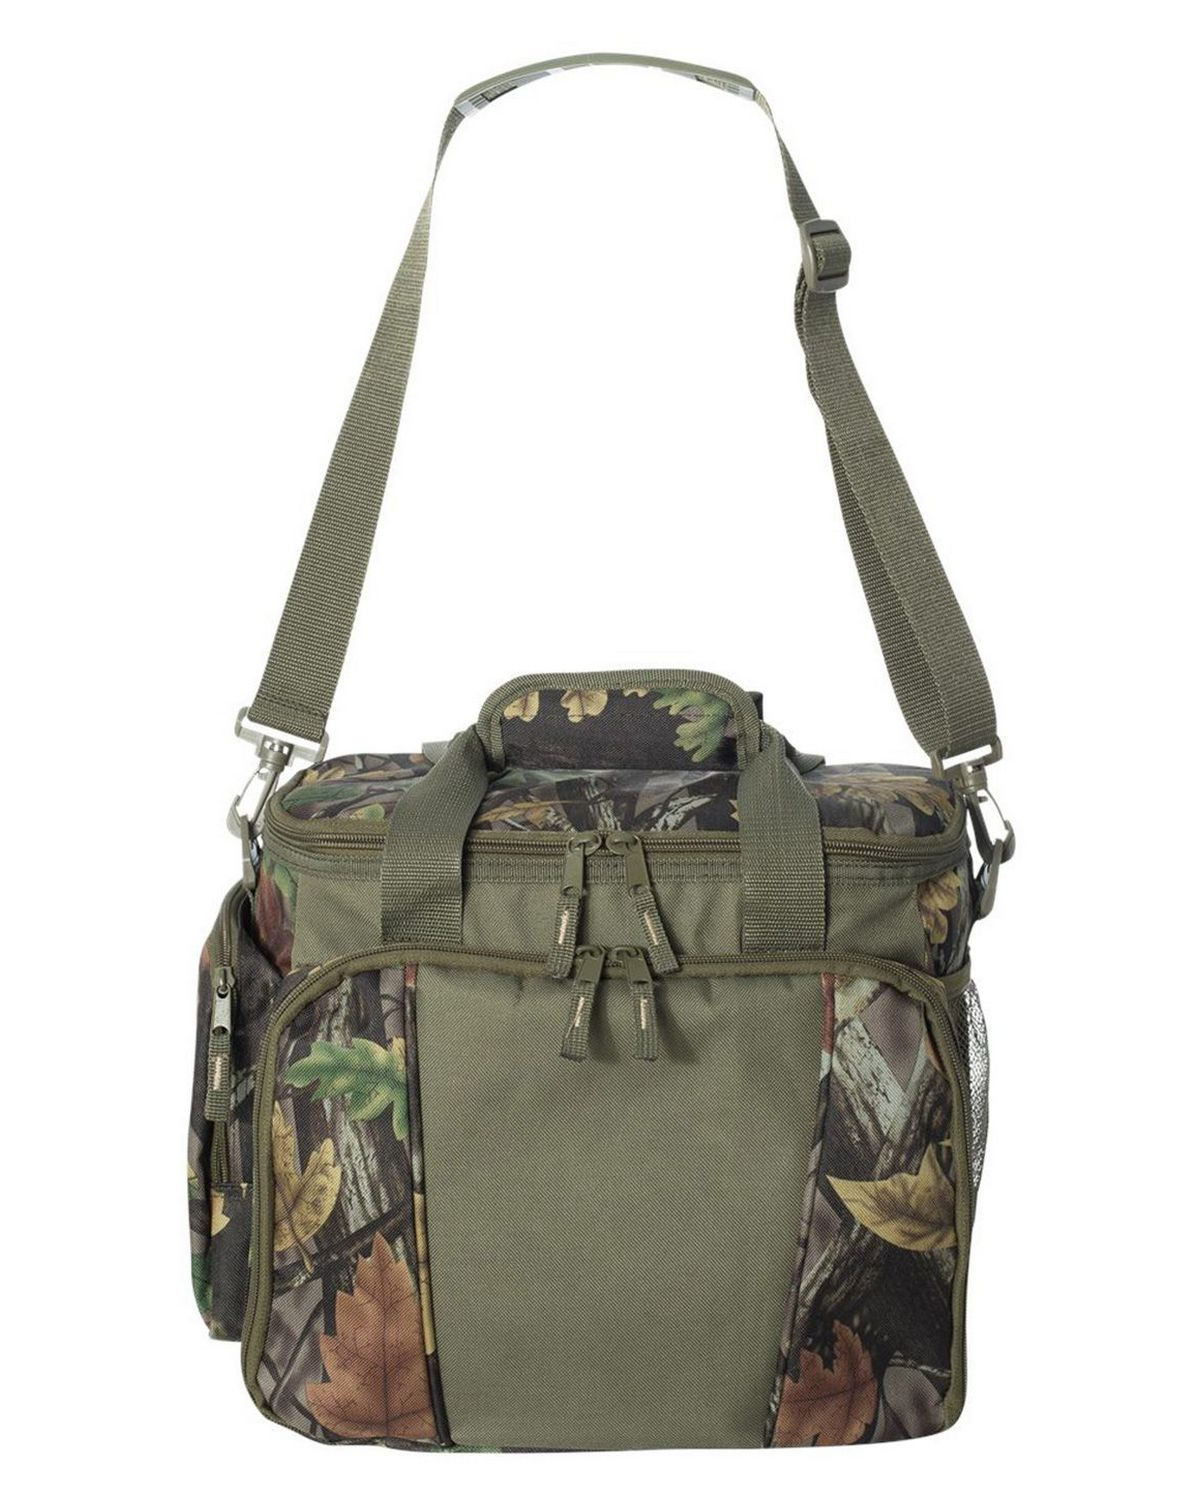 Sherwood Camouflage Small Roll Duffel Bag 5562